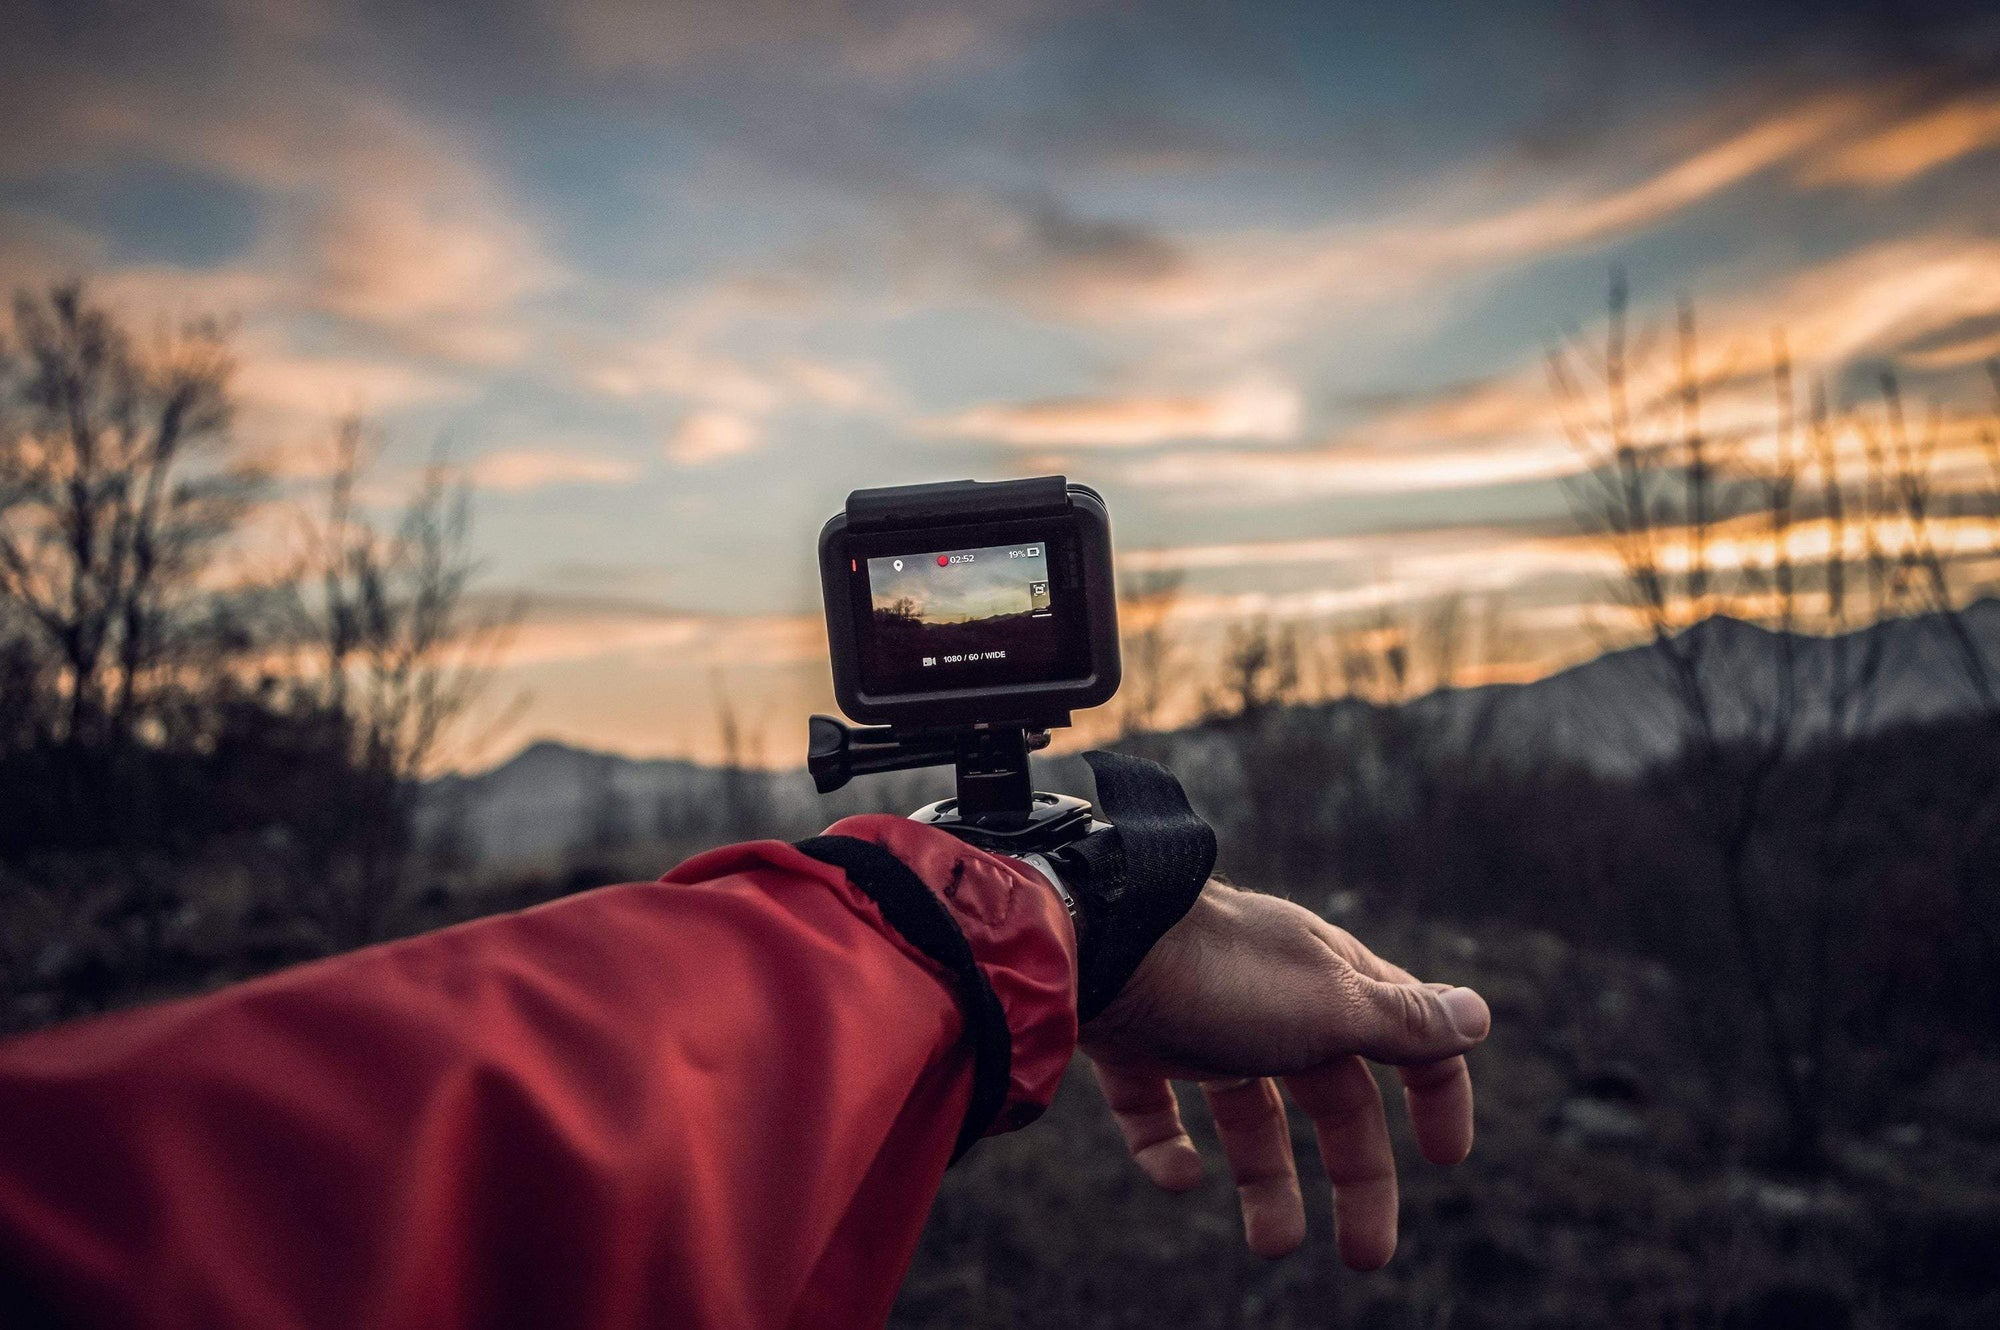 Hand in the outdoors with GoPro on wrist